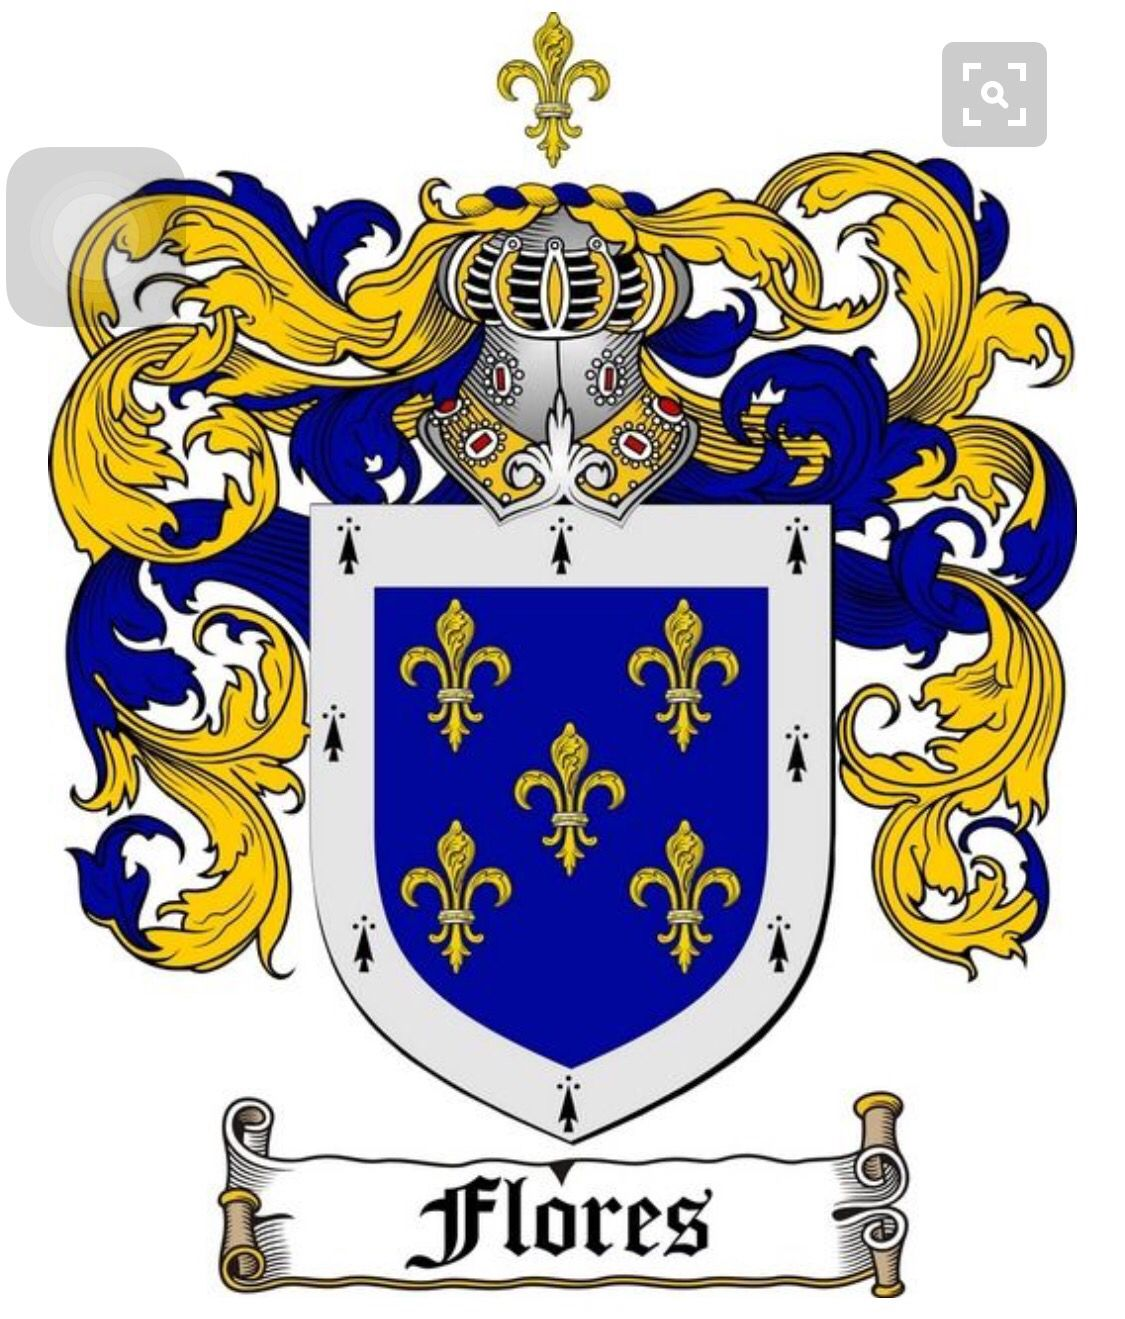 Apellido flores heraldica apellidos espaoles escudos de armas flores family crest flores family crest flores coat of arms origins available italian spanish where did the italian flores family come from buycottarizona